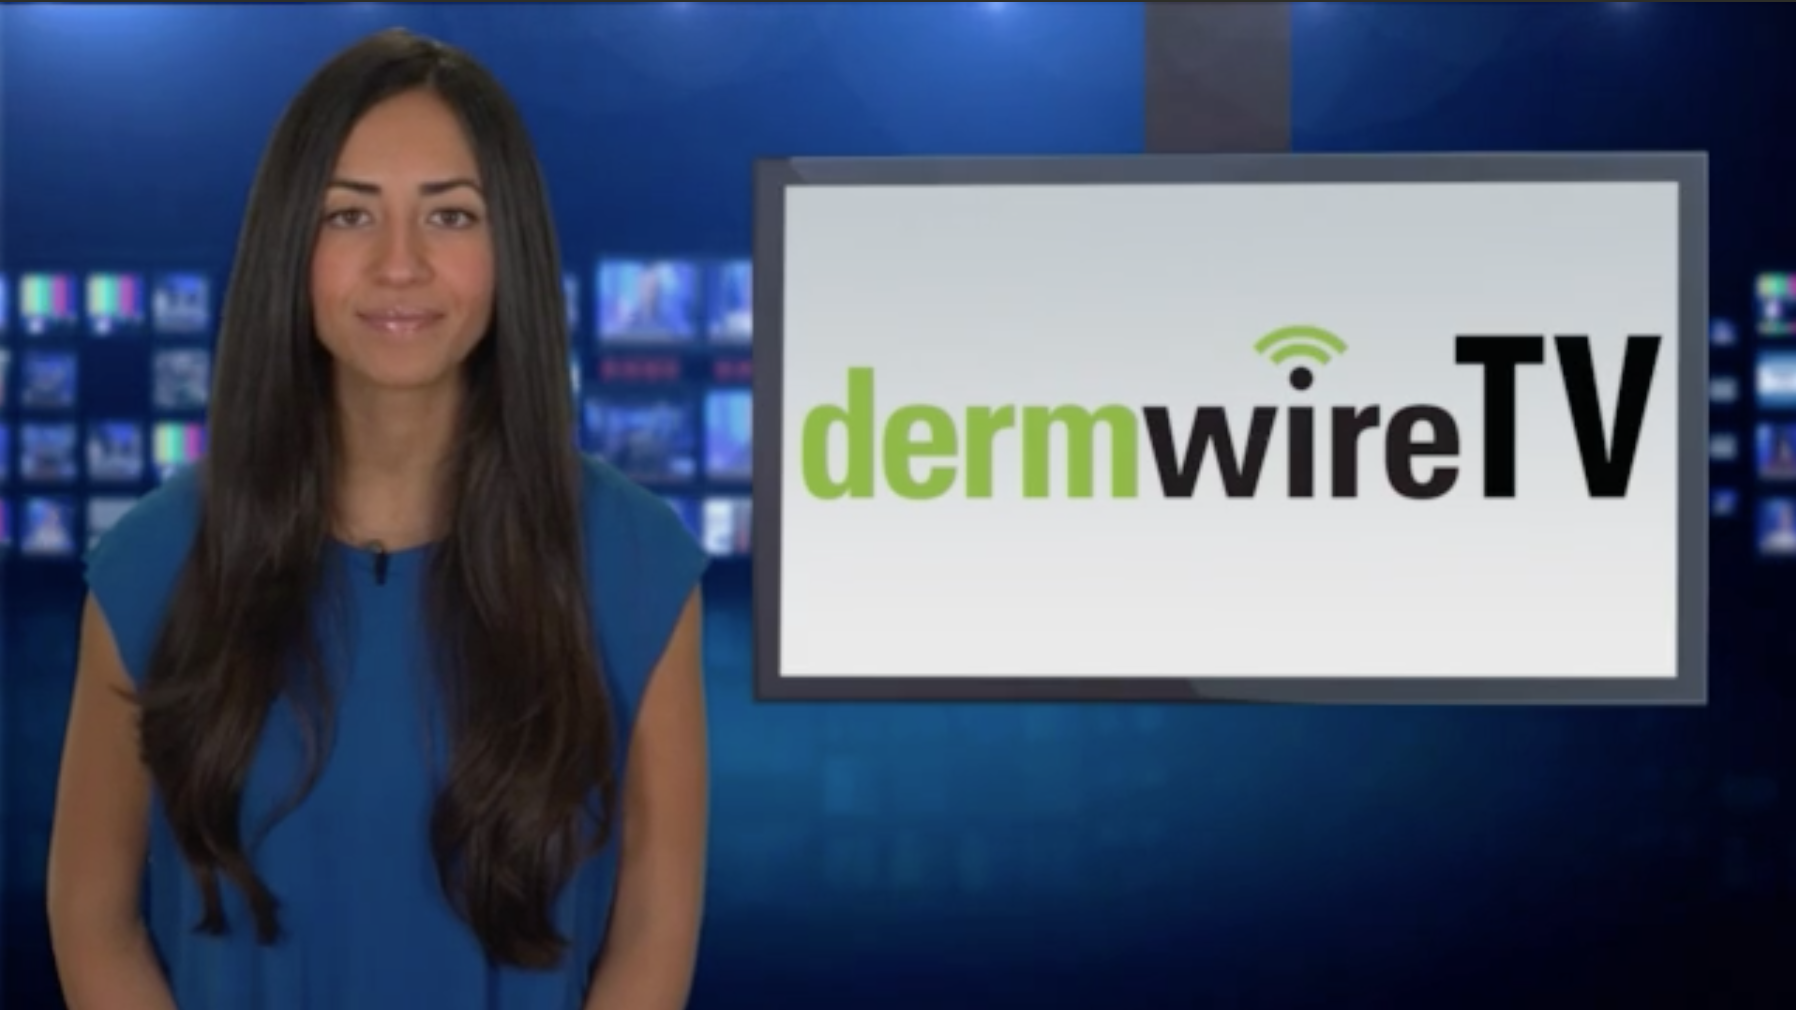 DermWireTV: Drug Prices Soar, Amgen Files BLA for Biosimilar to Humira